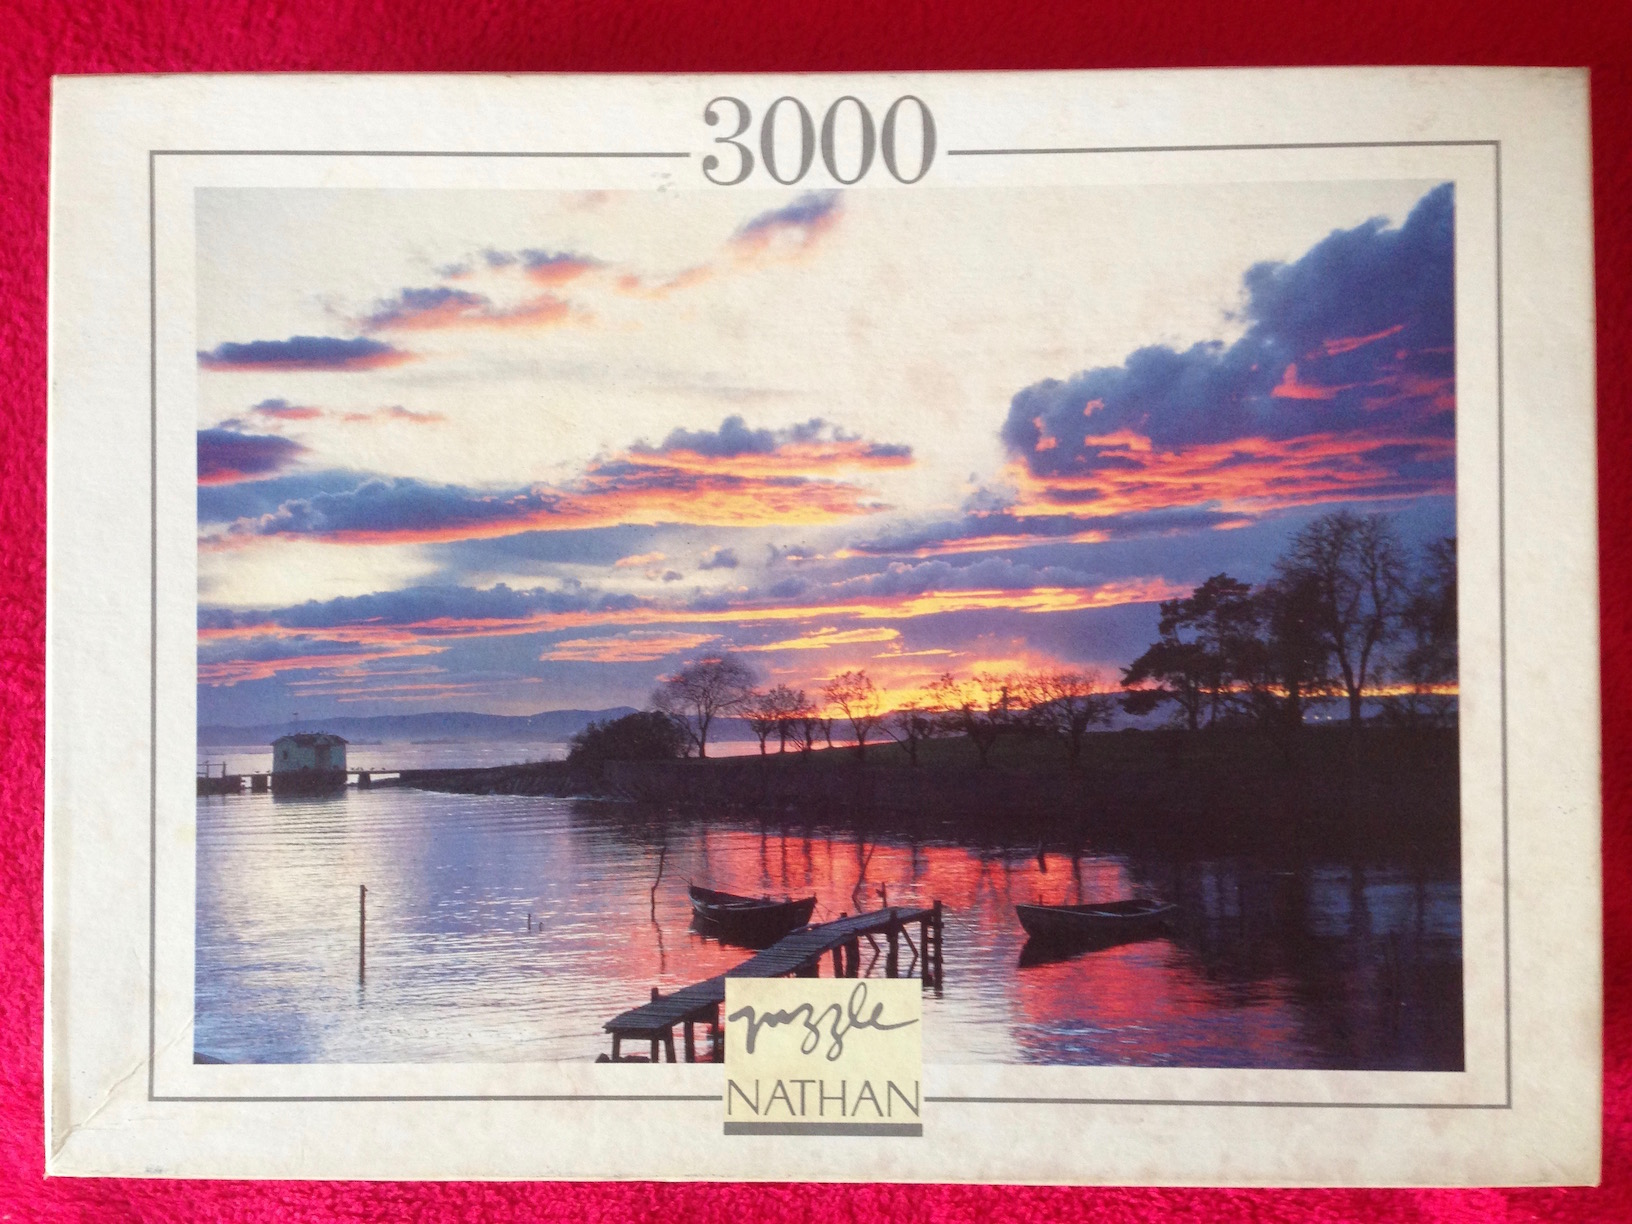 Image of the Puzzle 3000, Nathan, Clouds and Reflections, Complete, Picture of the Box